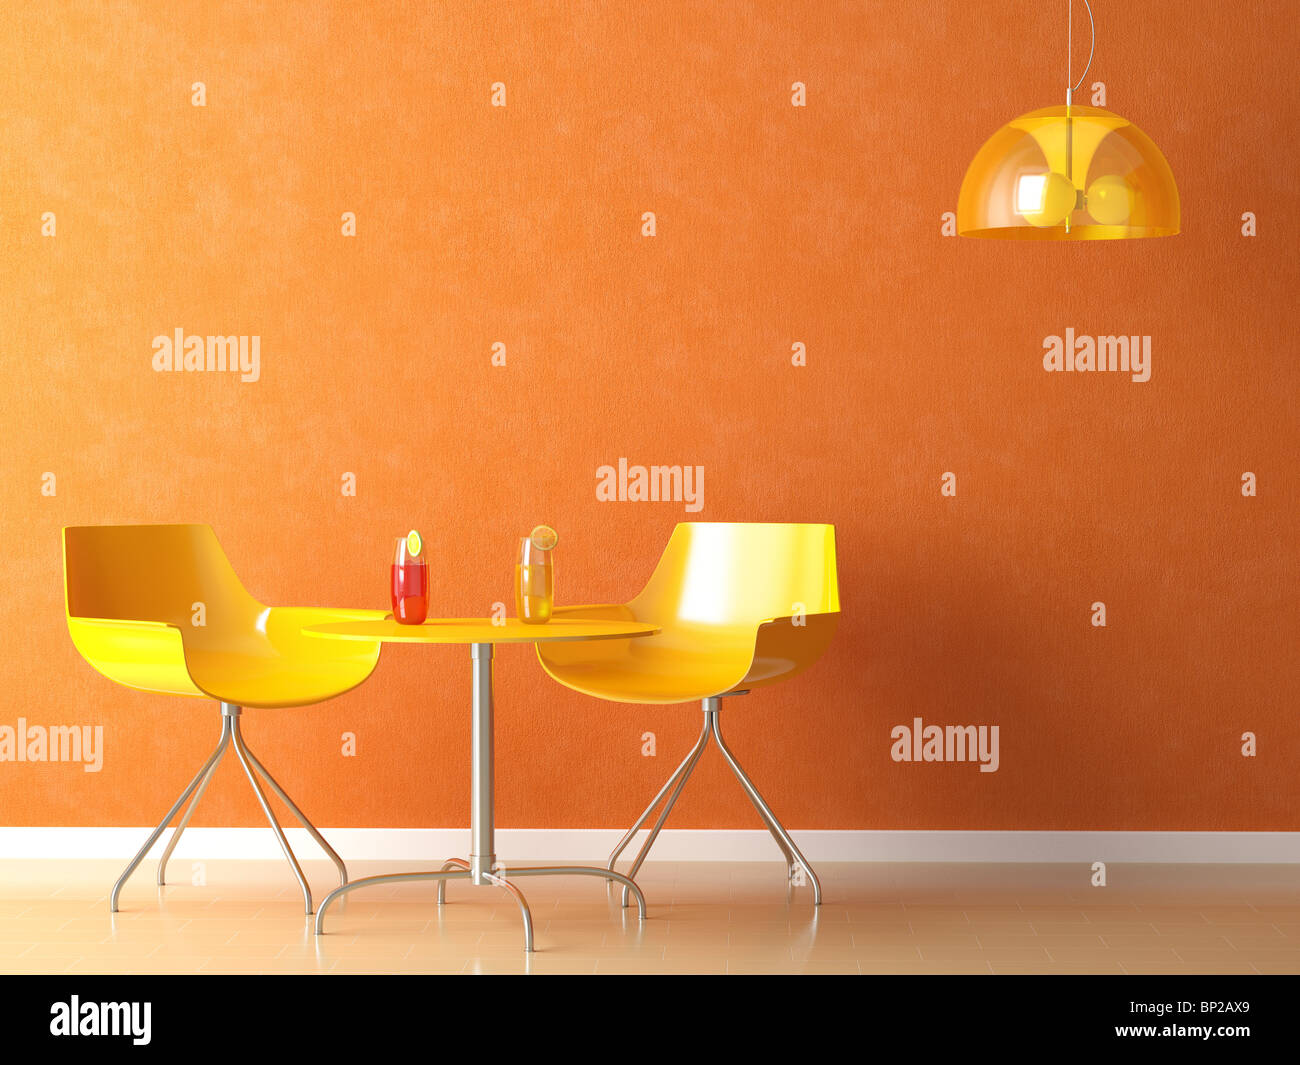 3D render scene of a modern coffee-shop table and chair in orange and yellow colors - Stock Image